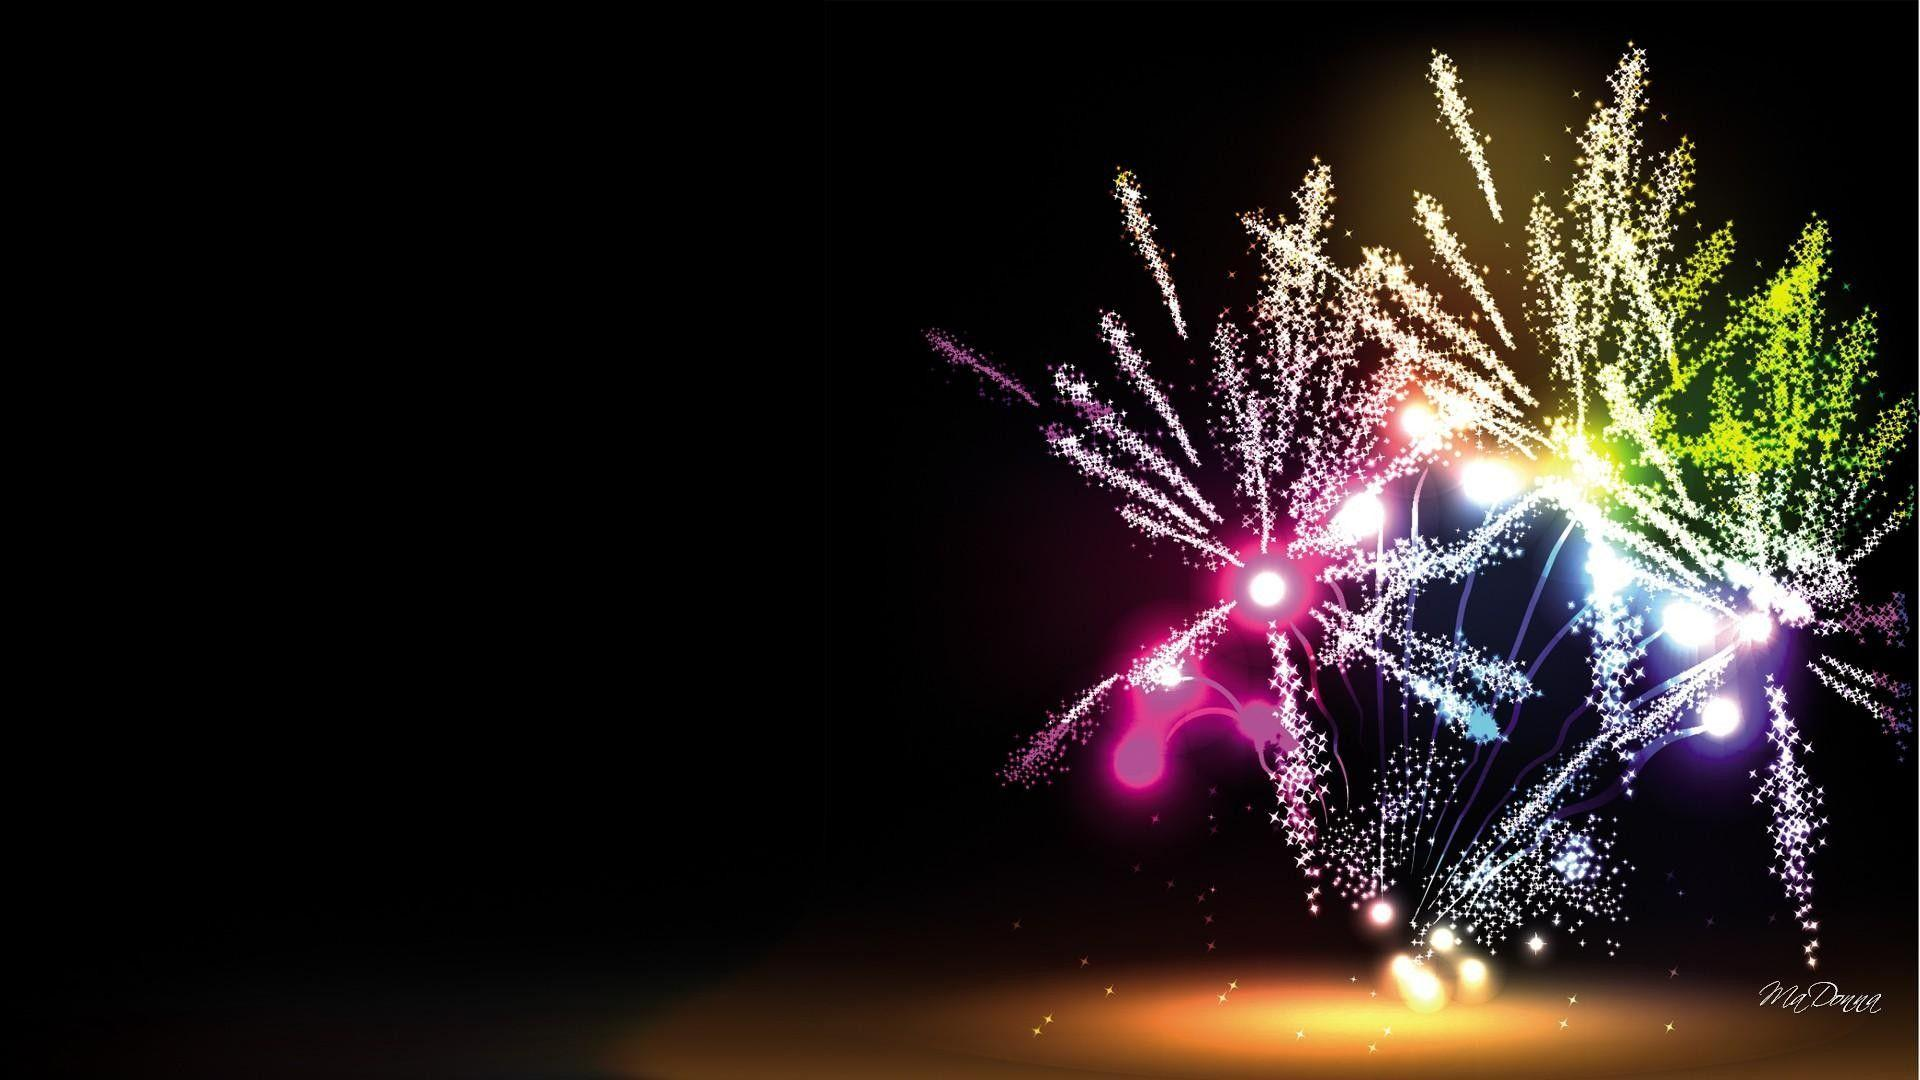 New Years Eve backgrounds ·① Download free stunning HD wallpapers